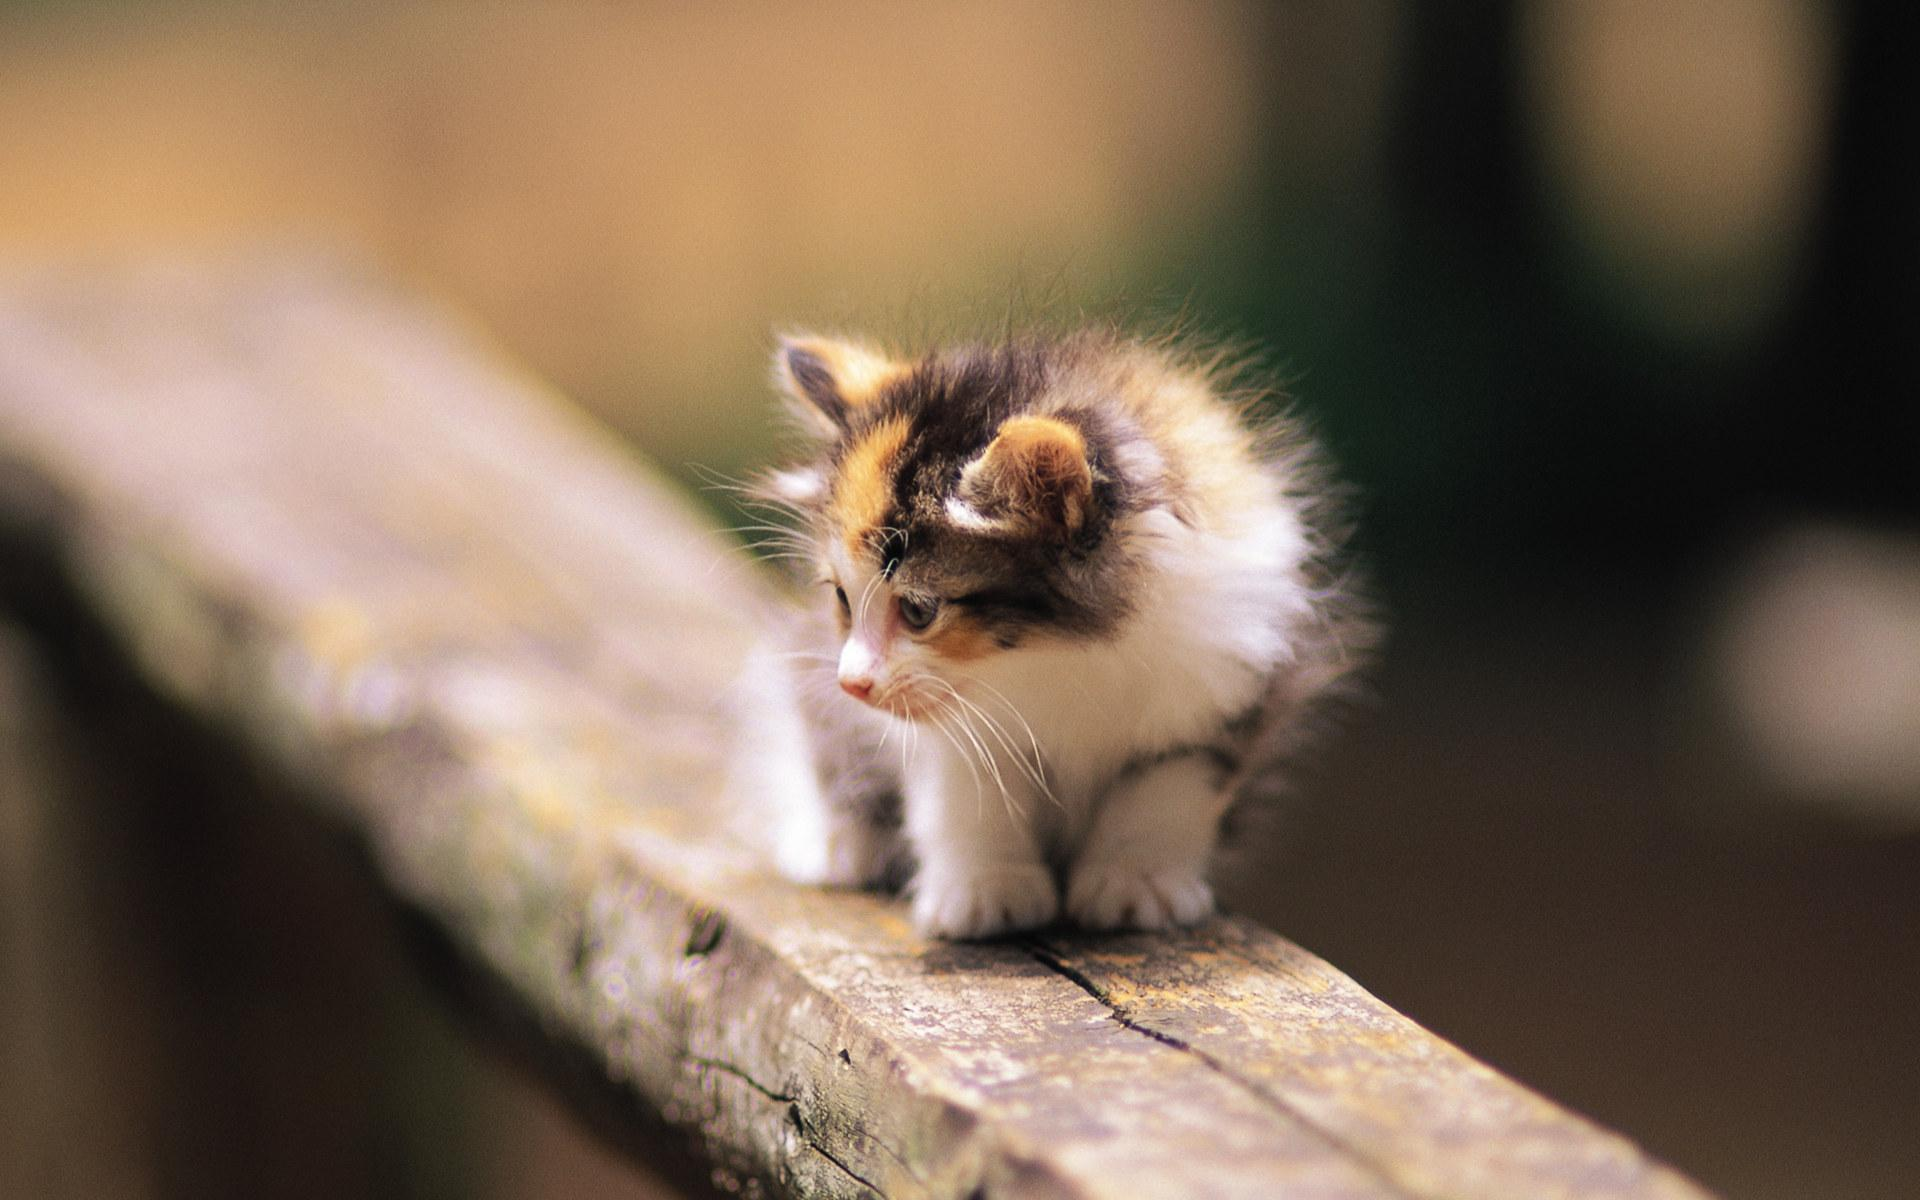 kittens images pretty kittens in yard wallpaper photos